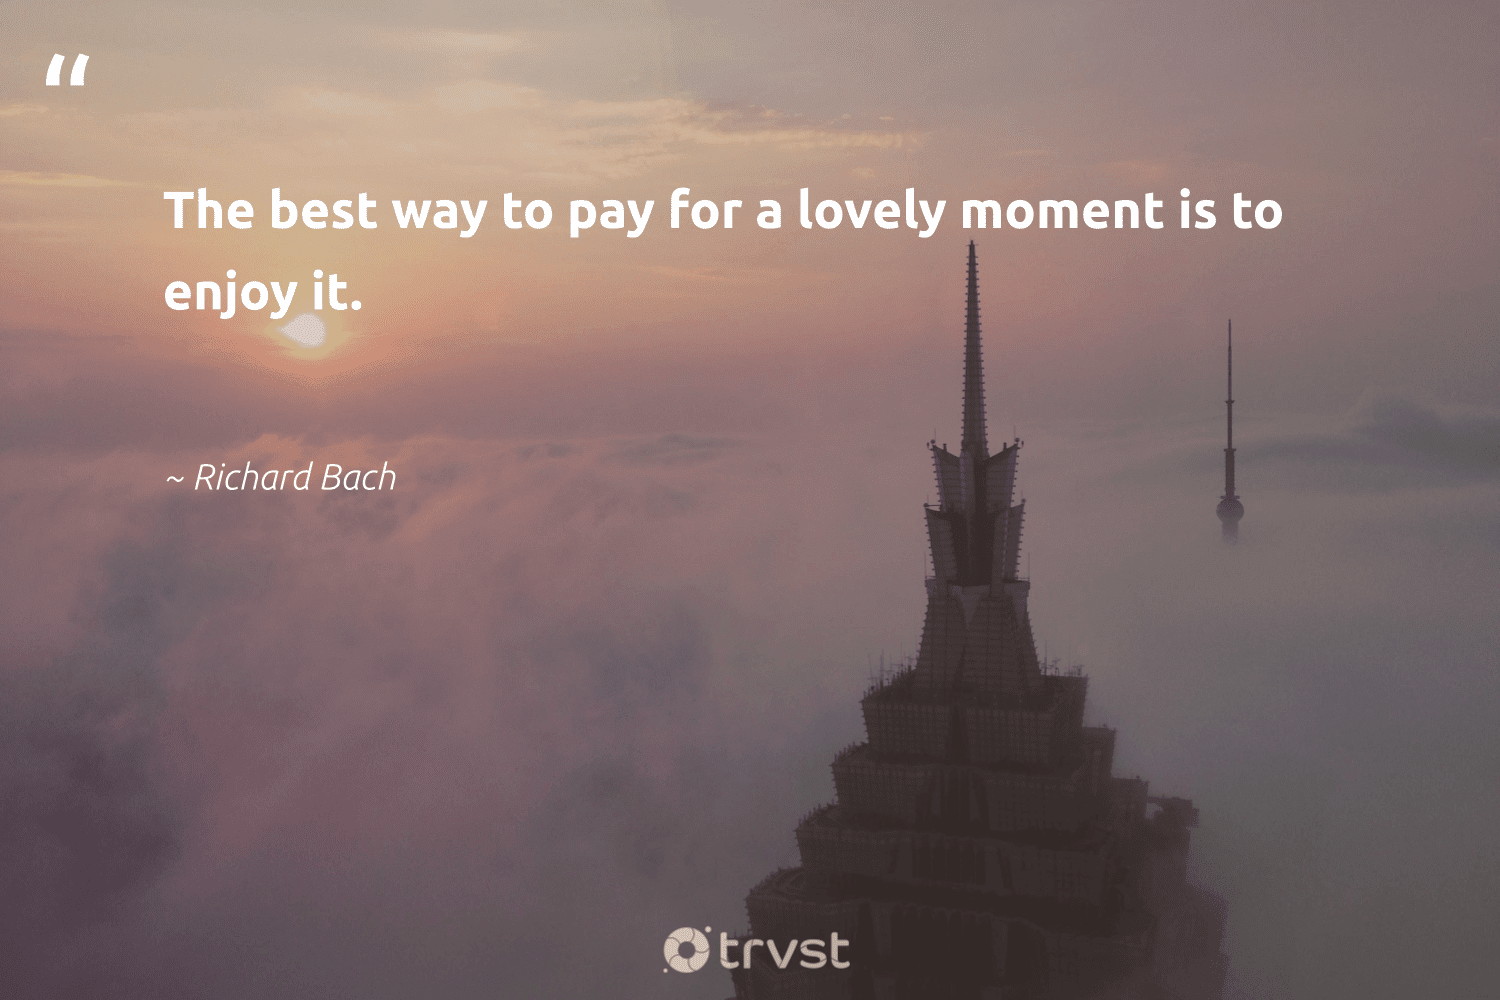 """""""The best way to pay for a lovely moment is to enjoy it.""""  - Richard Bach #trvst #quotes #mindset #impact #begreat #ecoconscious #health #dotherightthing #changemakers #dogood #togetherwecan #collectiveaction"""